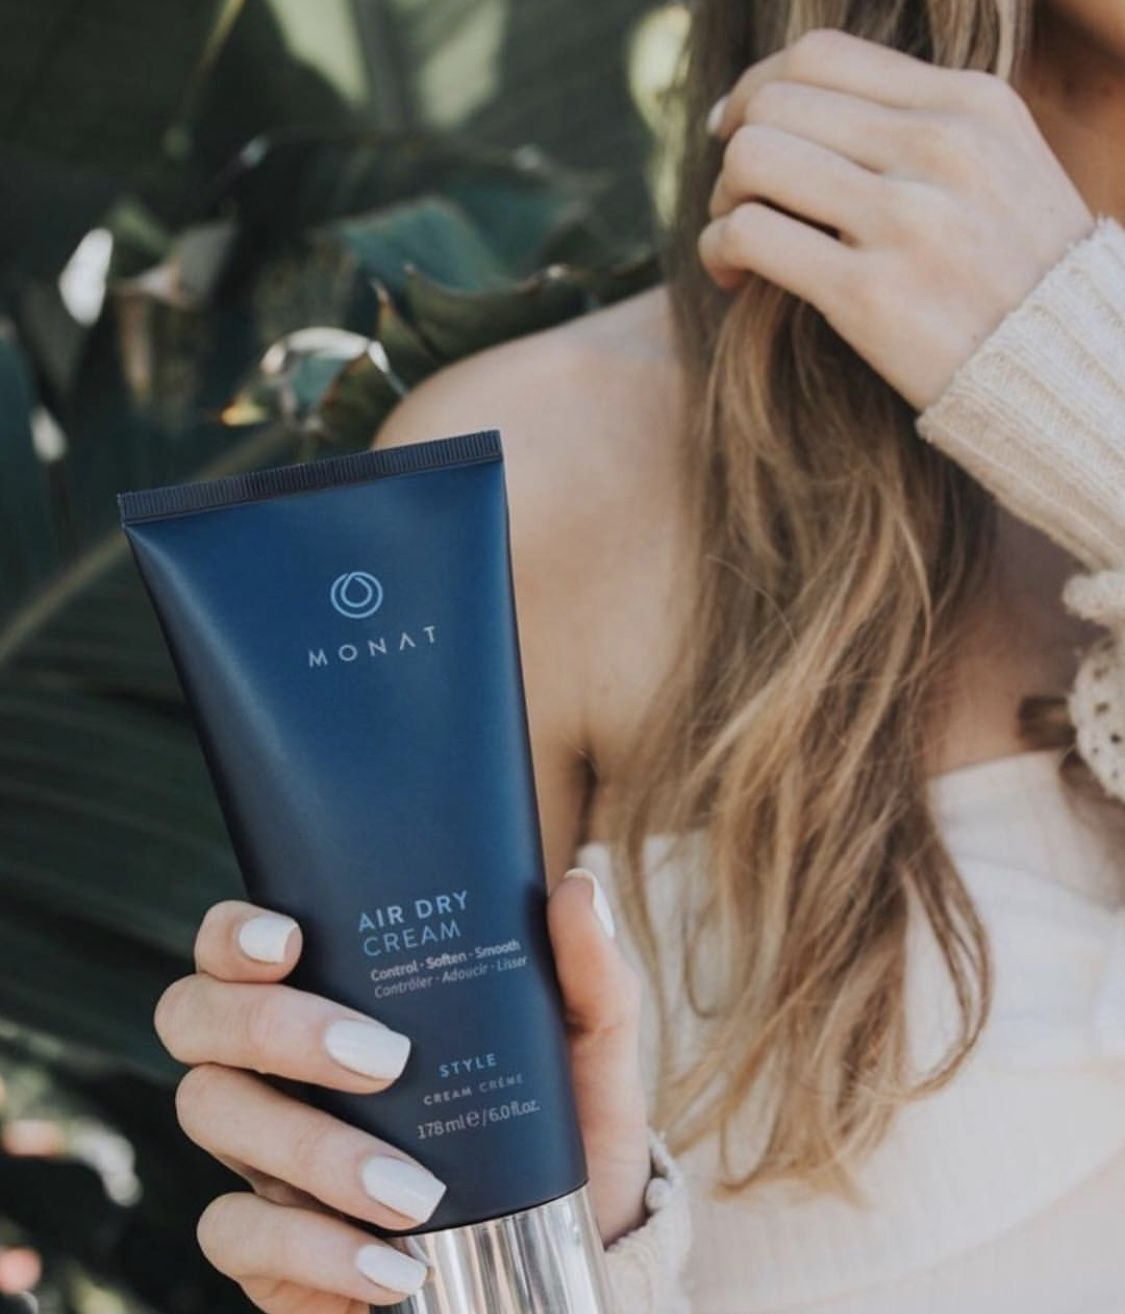 MONAT's Air Dry Cream has quickly a favorite of